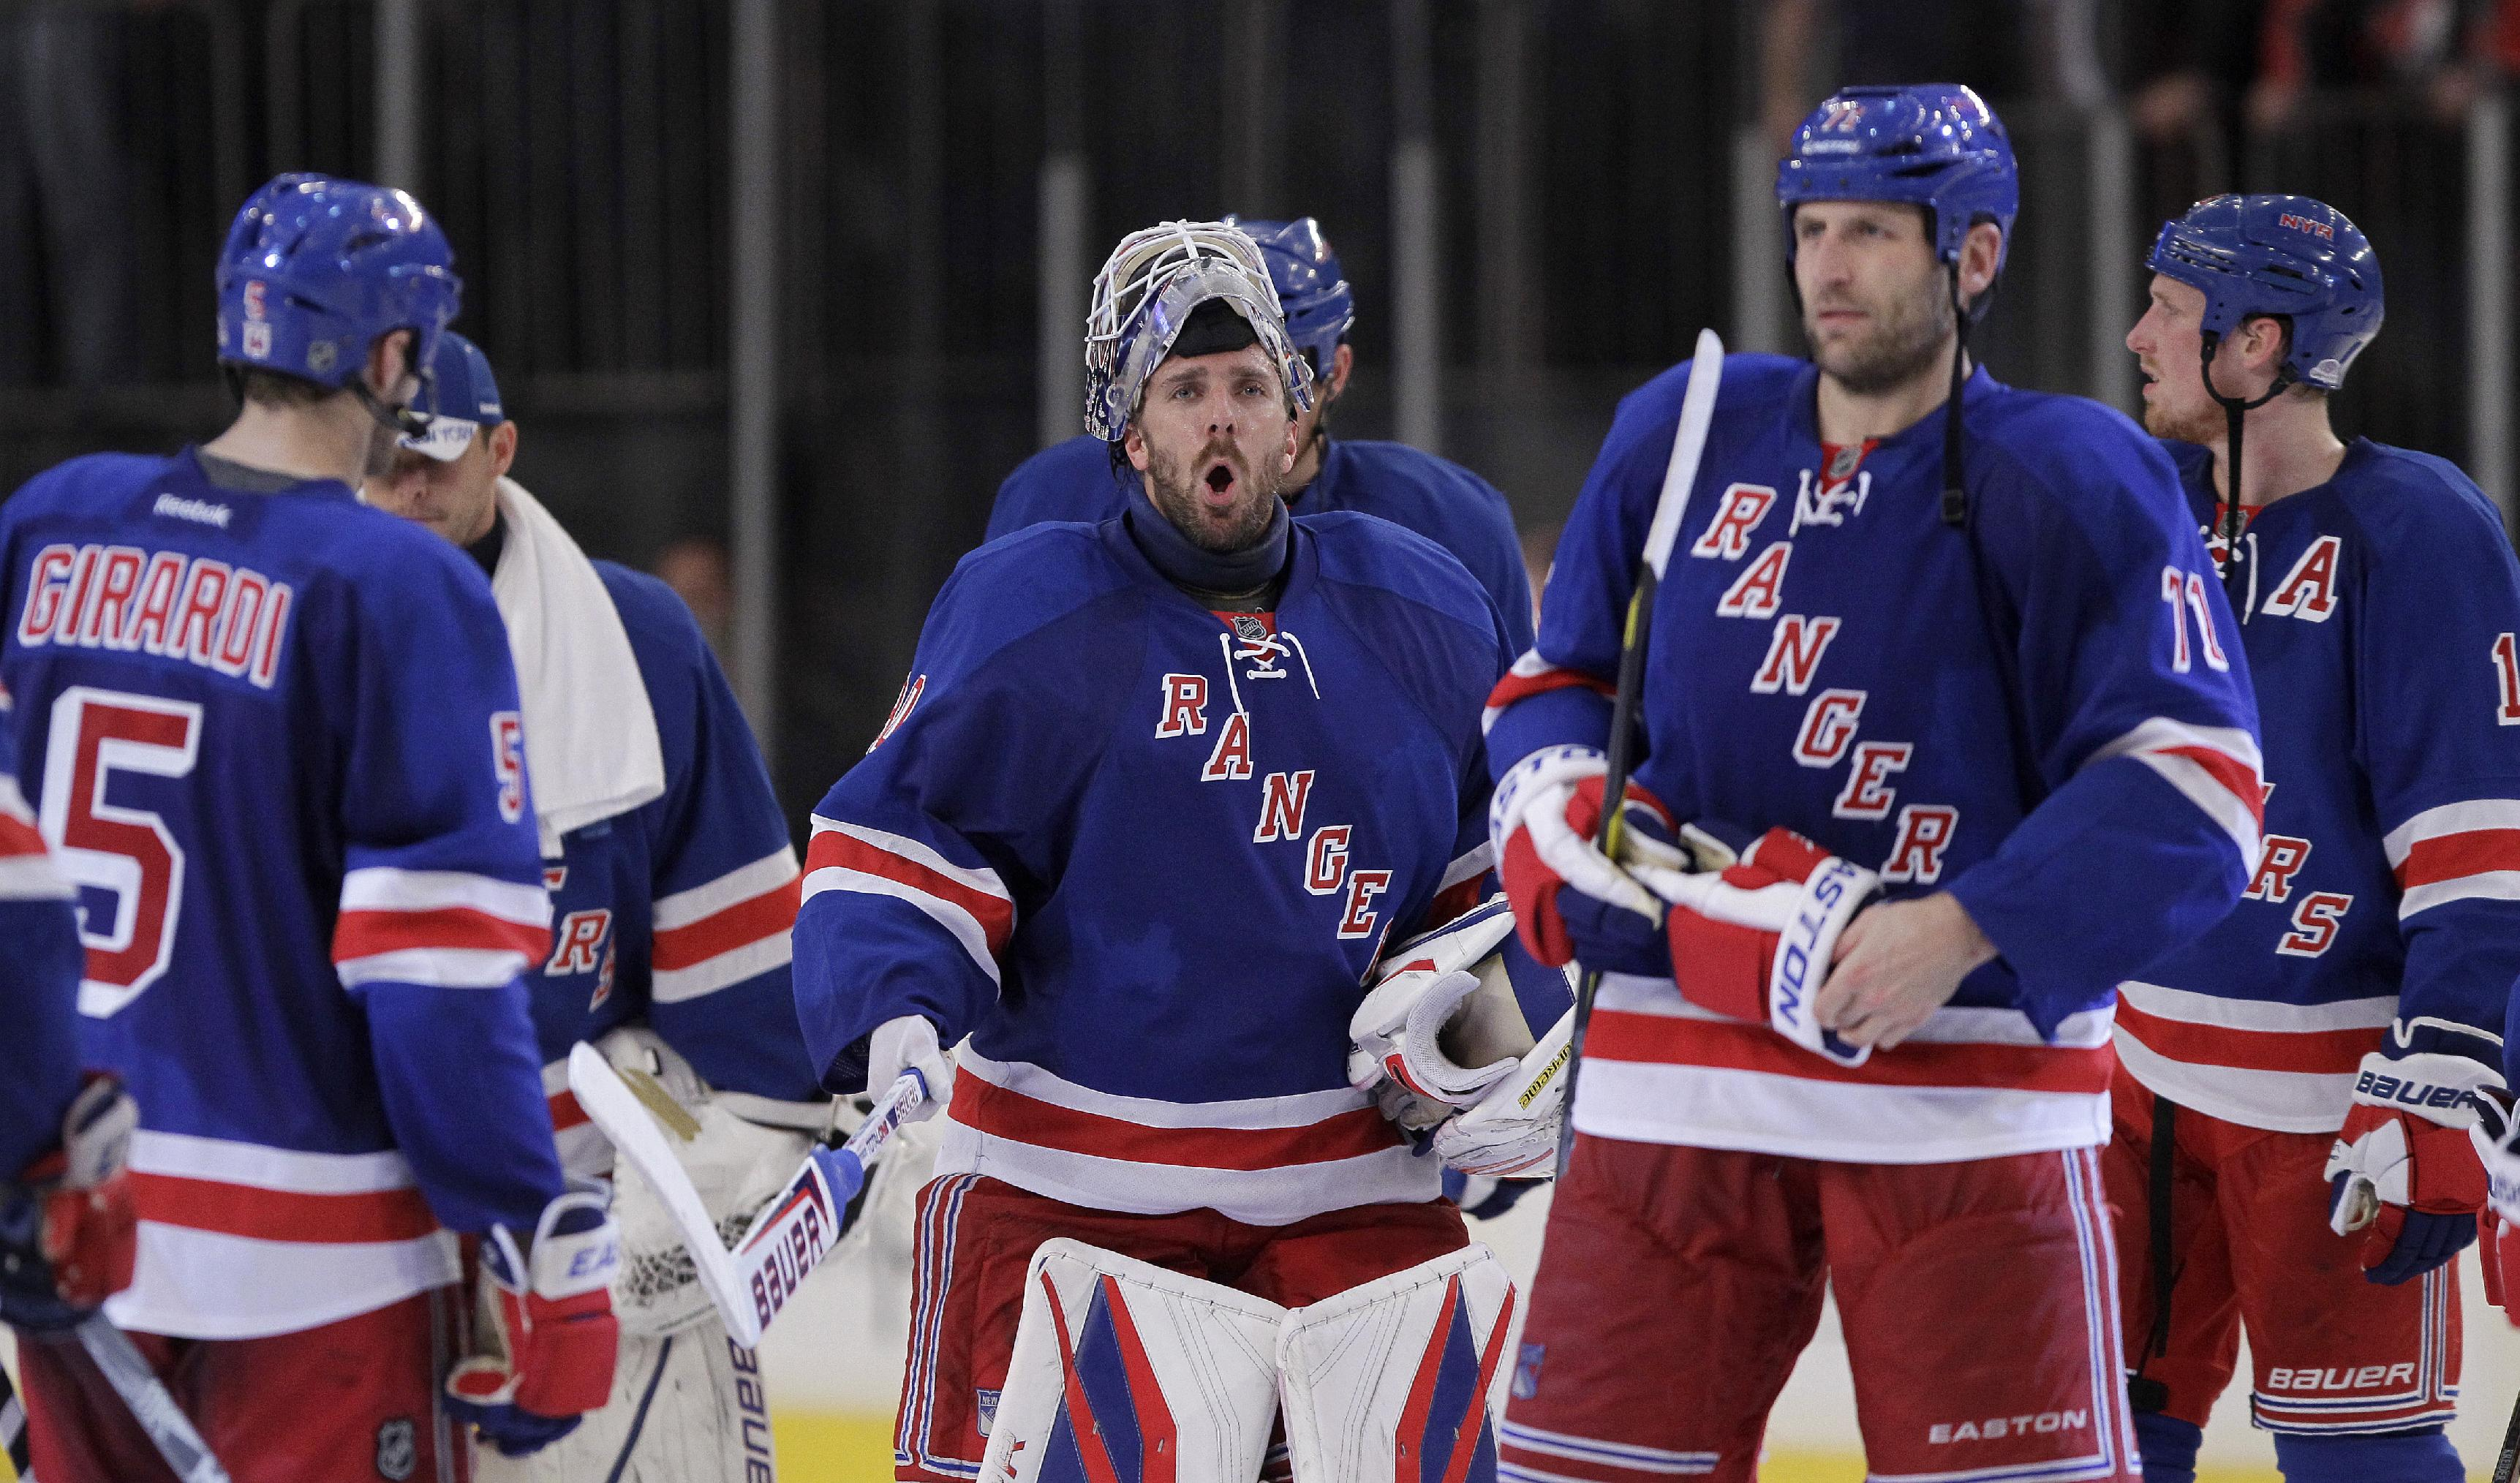 Rangers goalie Henrik Lundqvist celebrates moving on to Round 2. (AP)